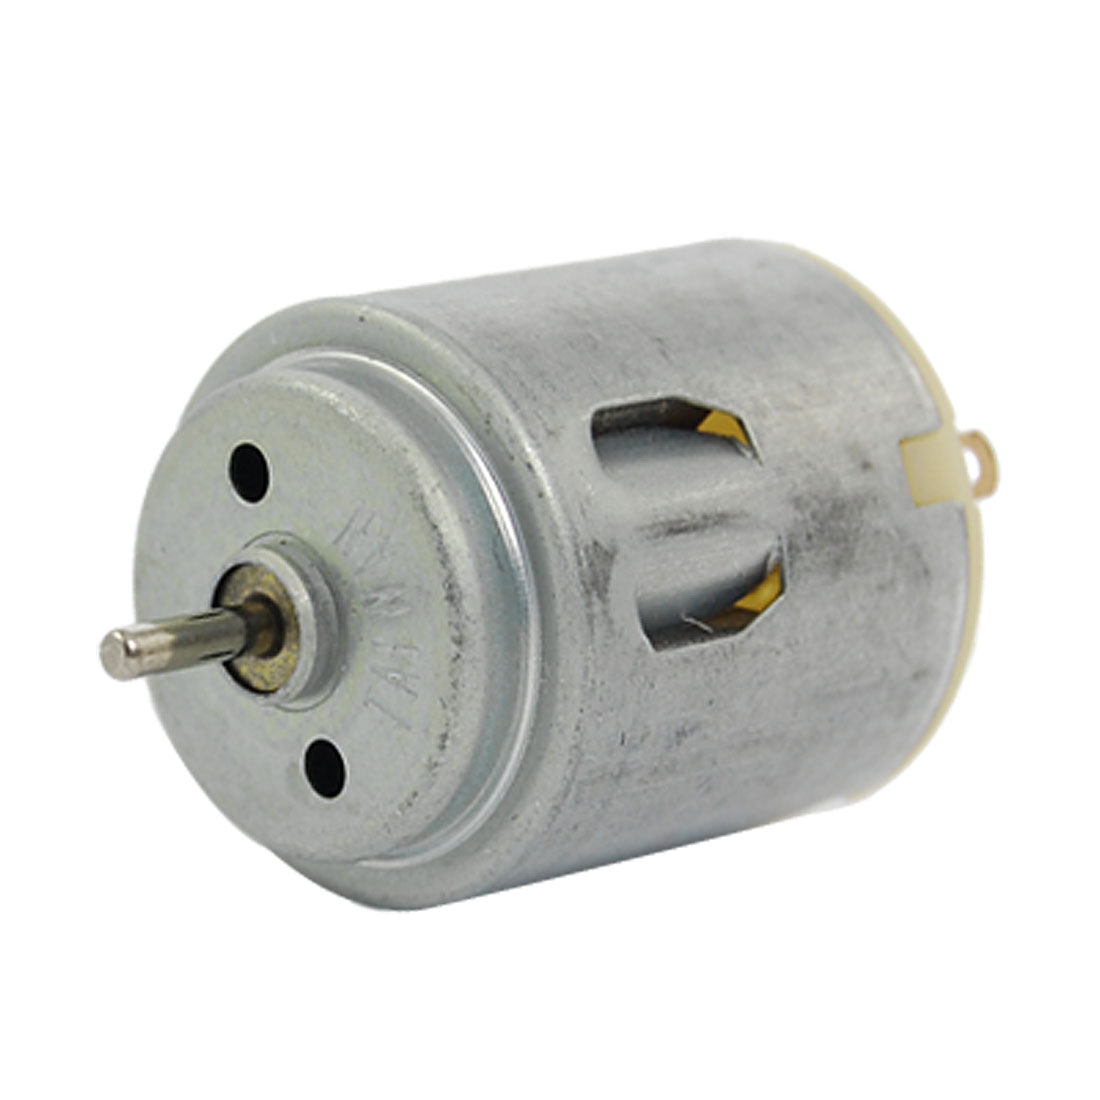 6V 4000RPM 0.02A Mini DC Motor for Smart Cars DIY Toys